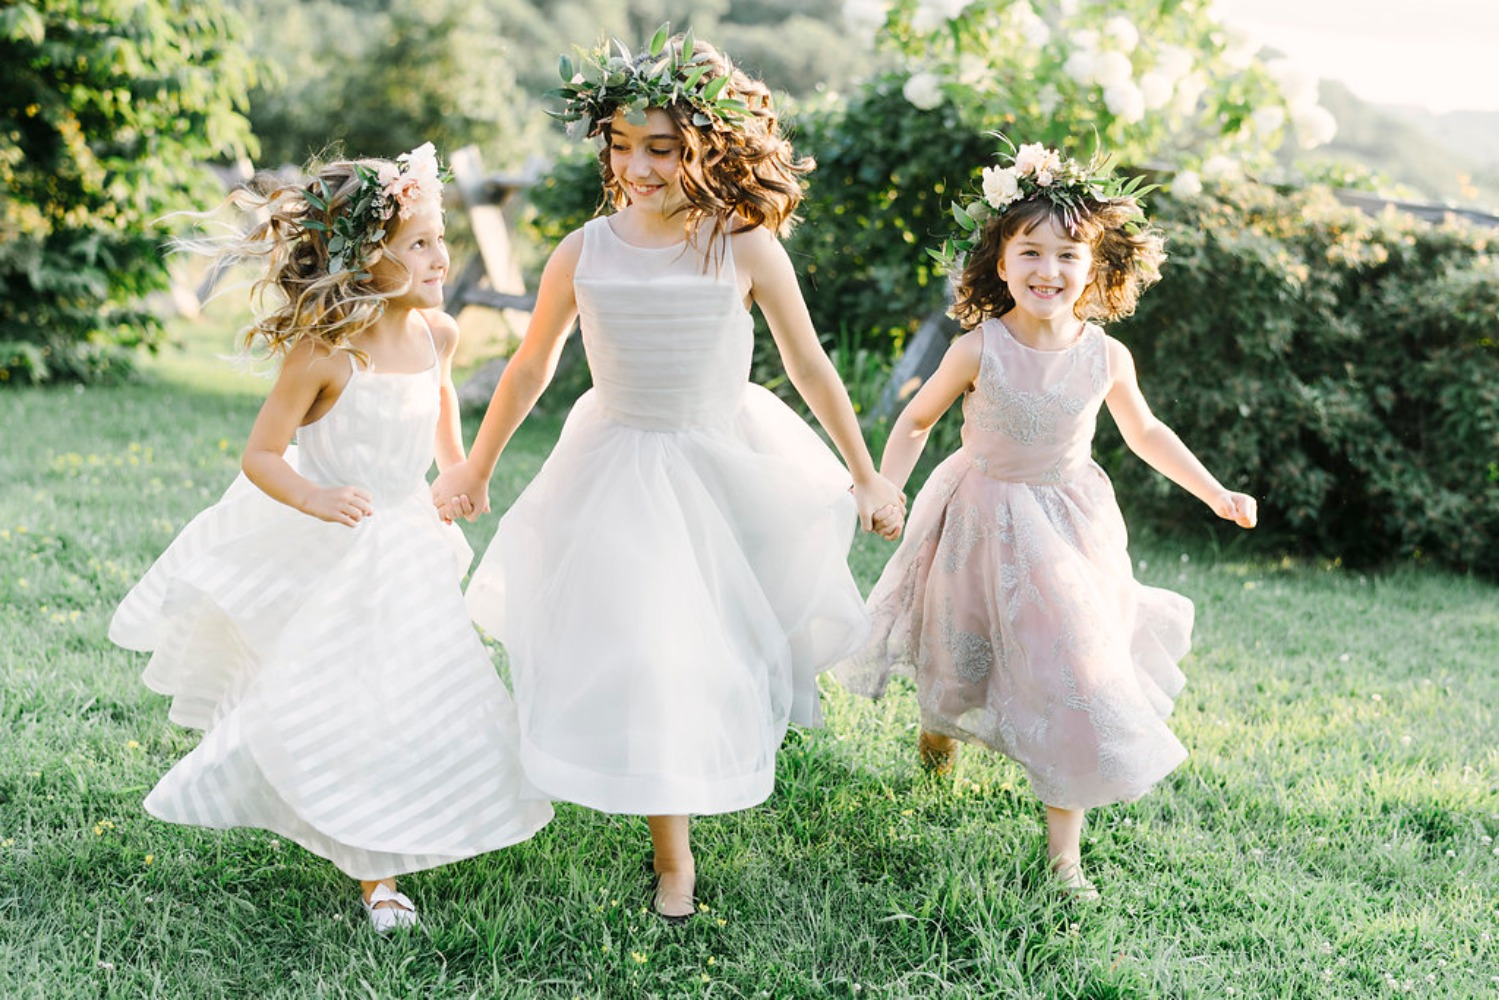 Hayley Paige flower girl dresses